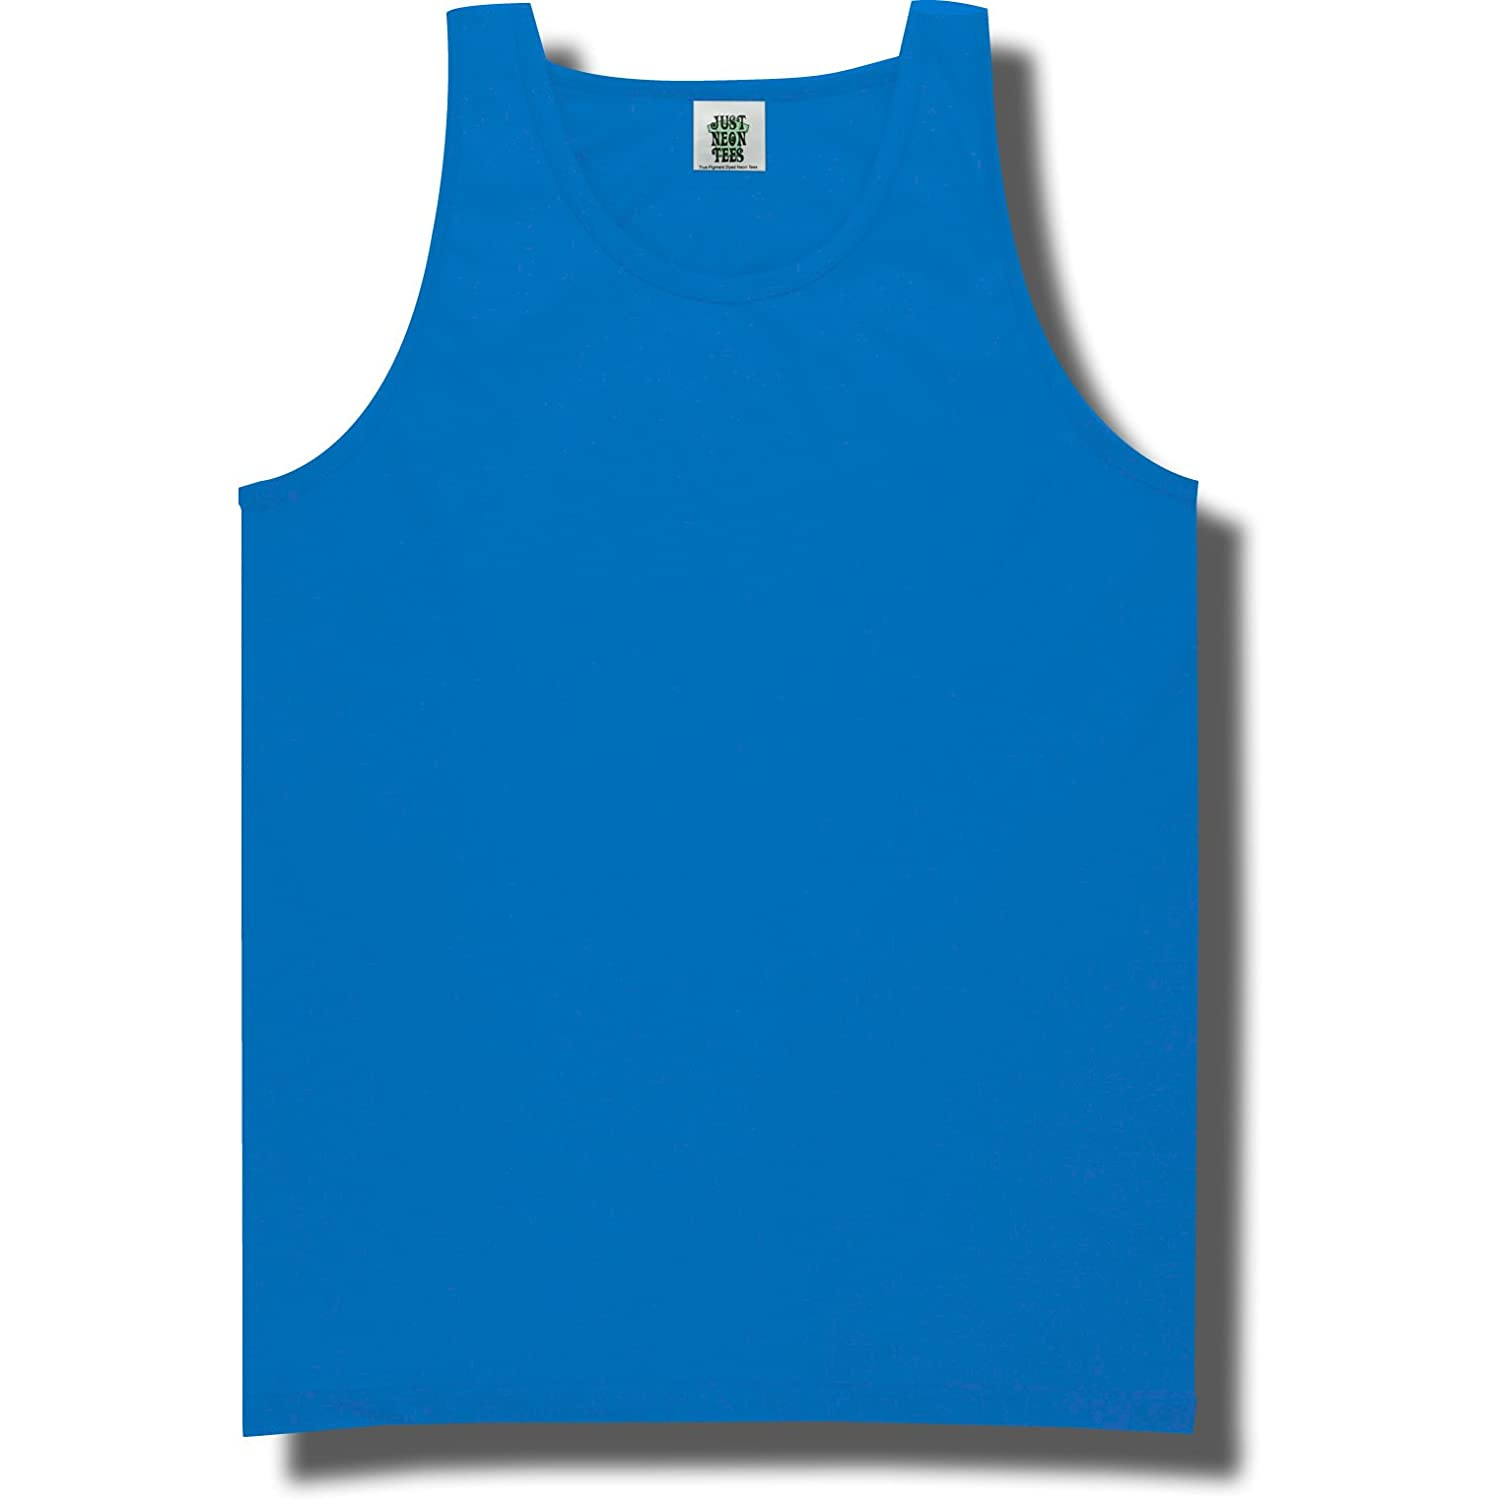 tank products detail styles cotton at online com catalog sleevelesses comfort comforter design tops image customink large custom colors